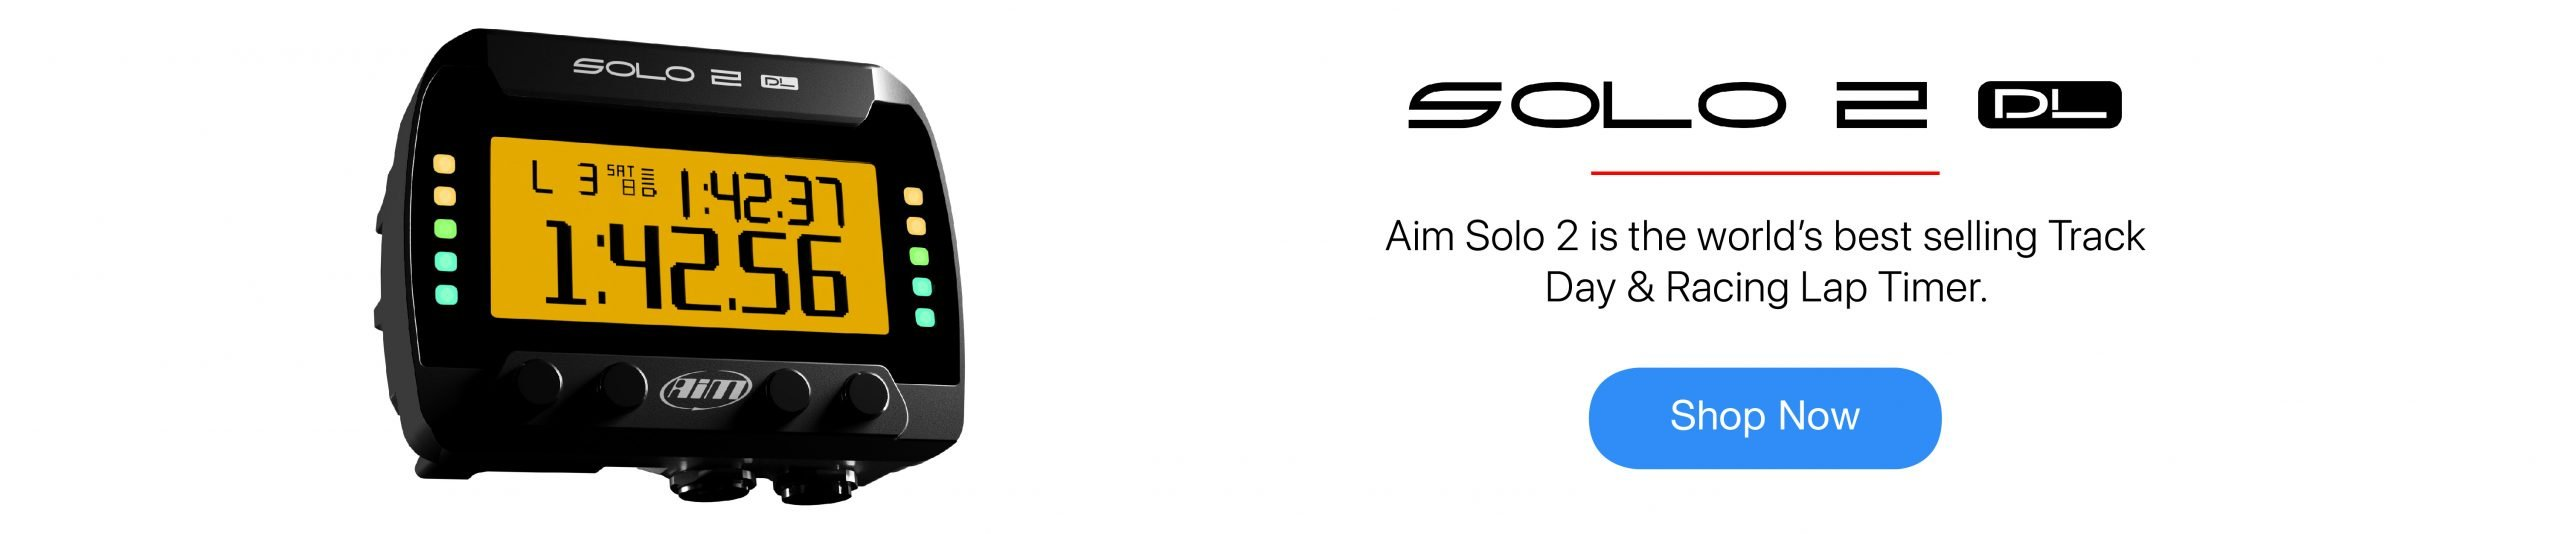 Solo2 DL